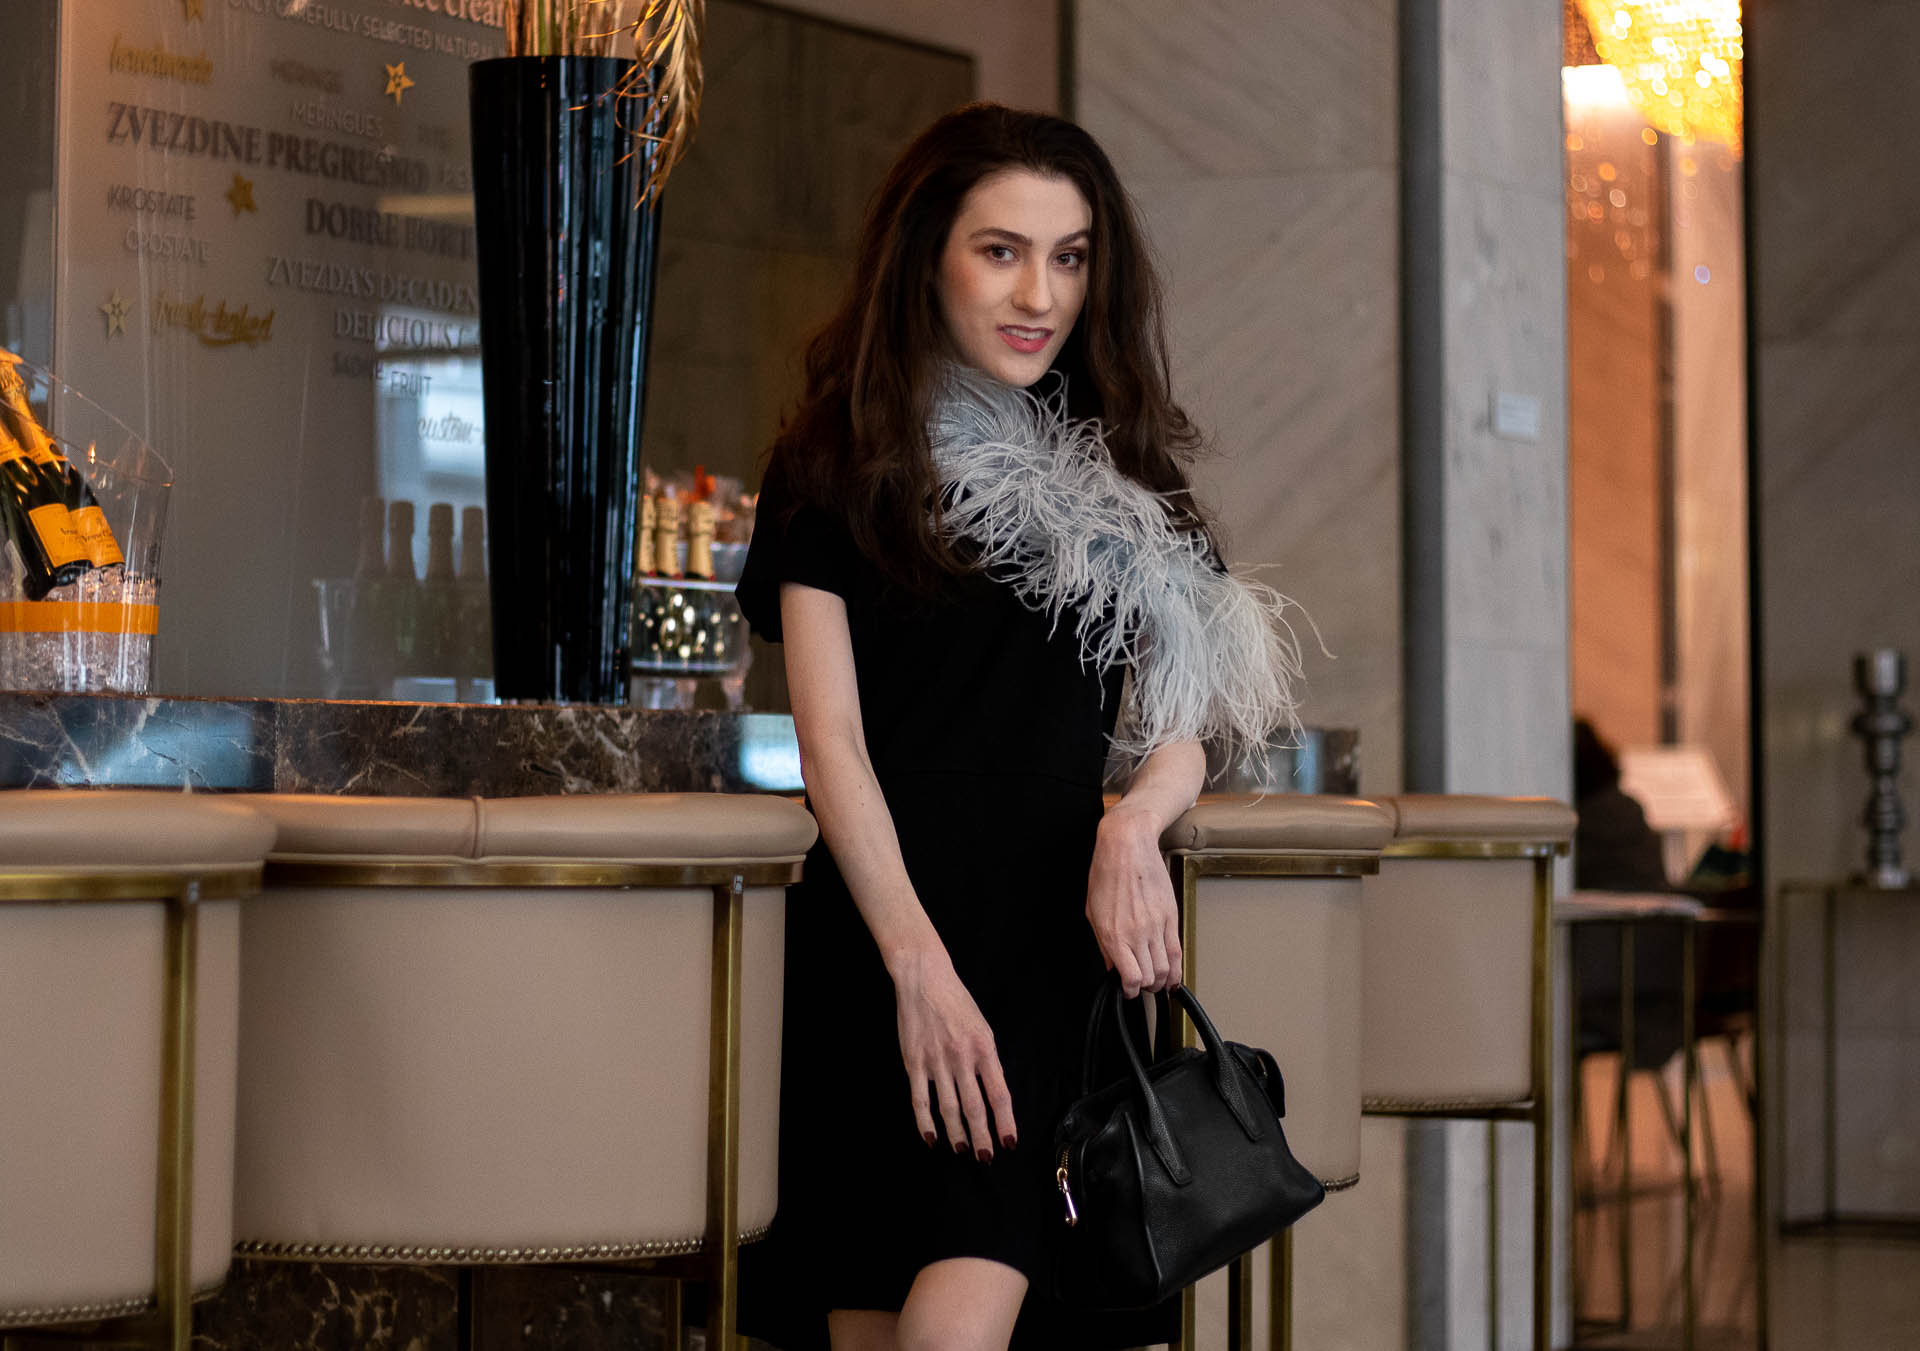 afabe643ee285 ... Popular Fashion Blogger Veronika Lipar of Brunette from Wall Street  wearing short sleeve LBD with feathers